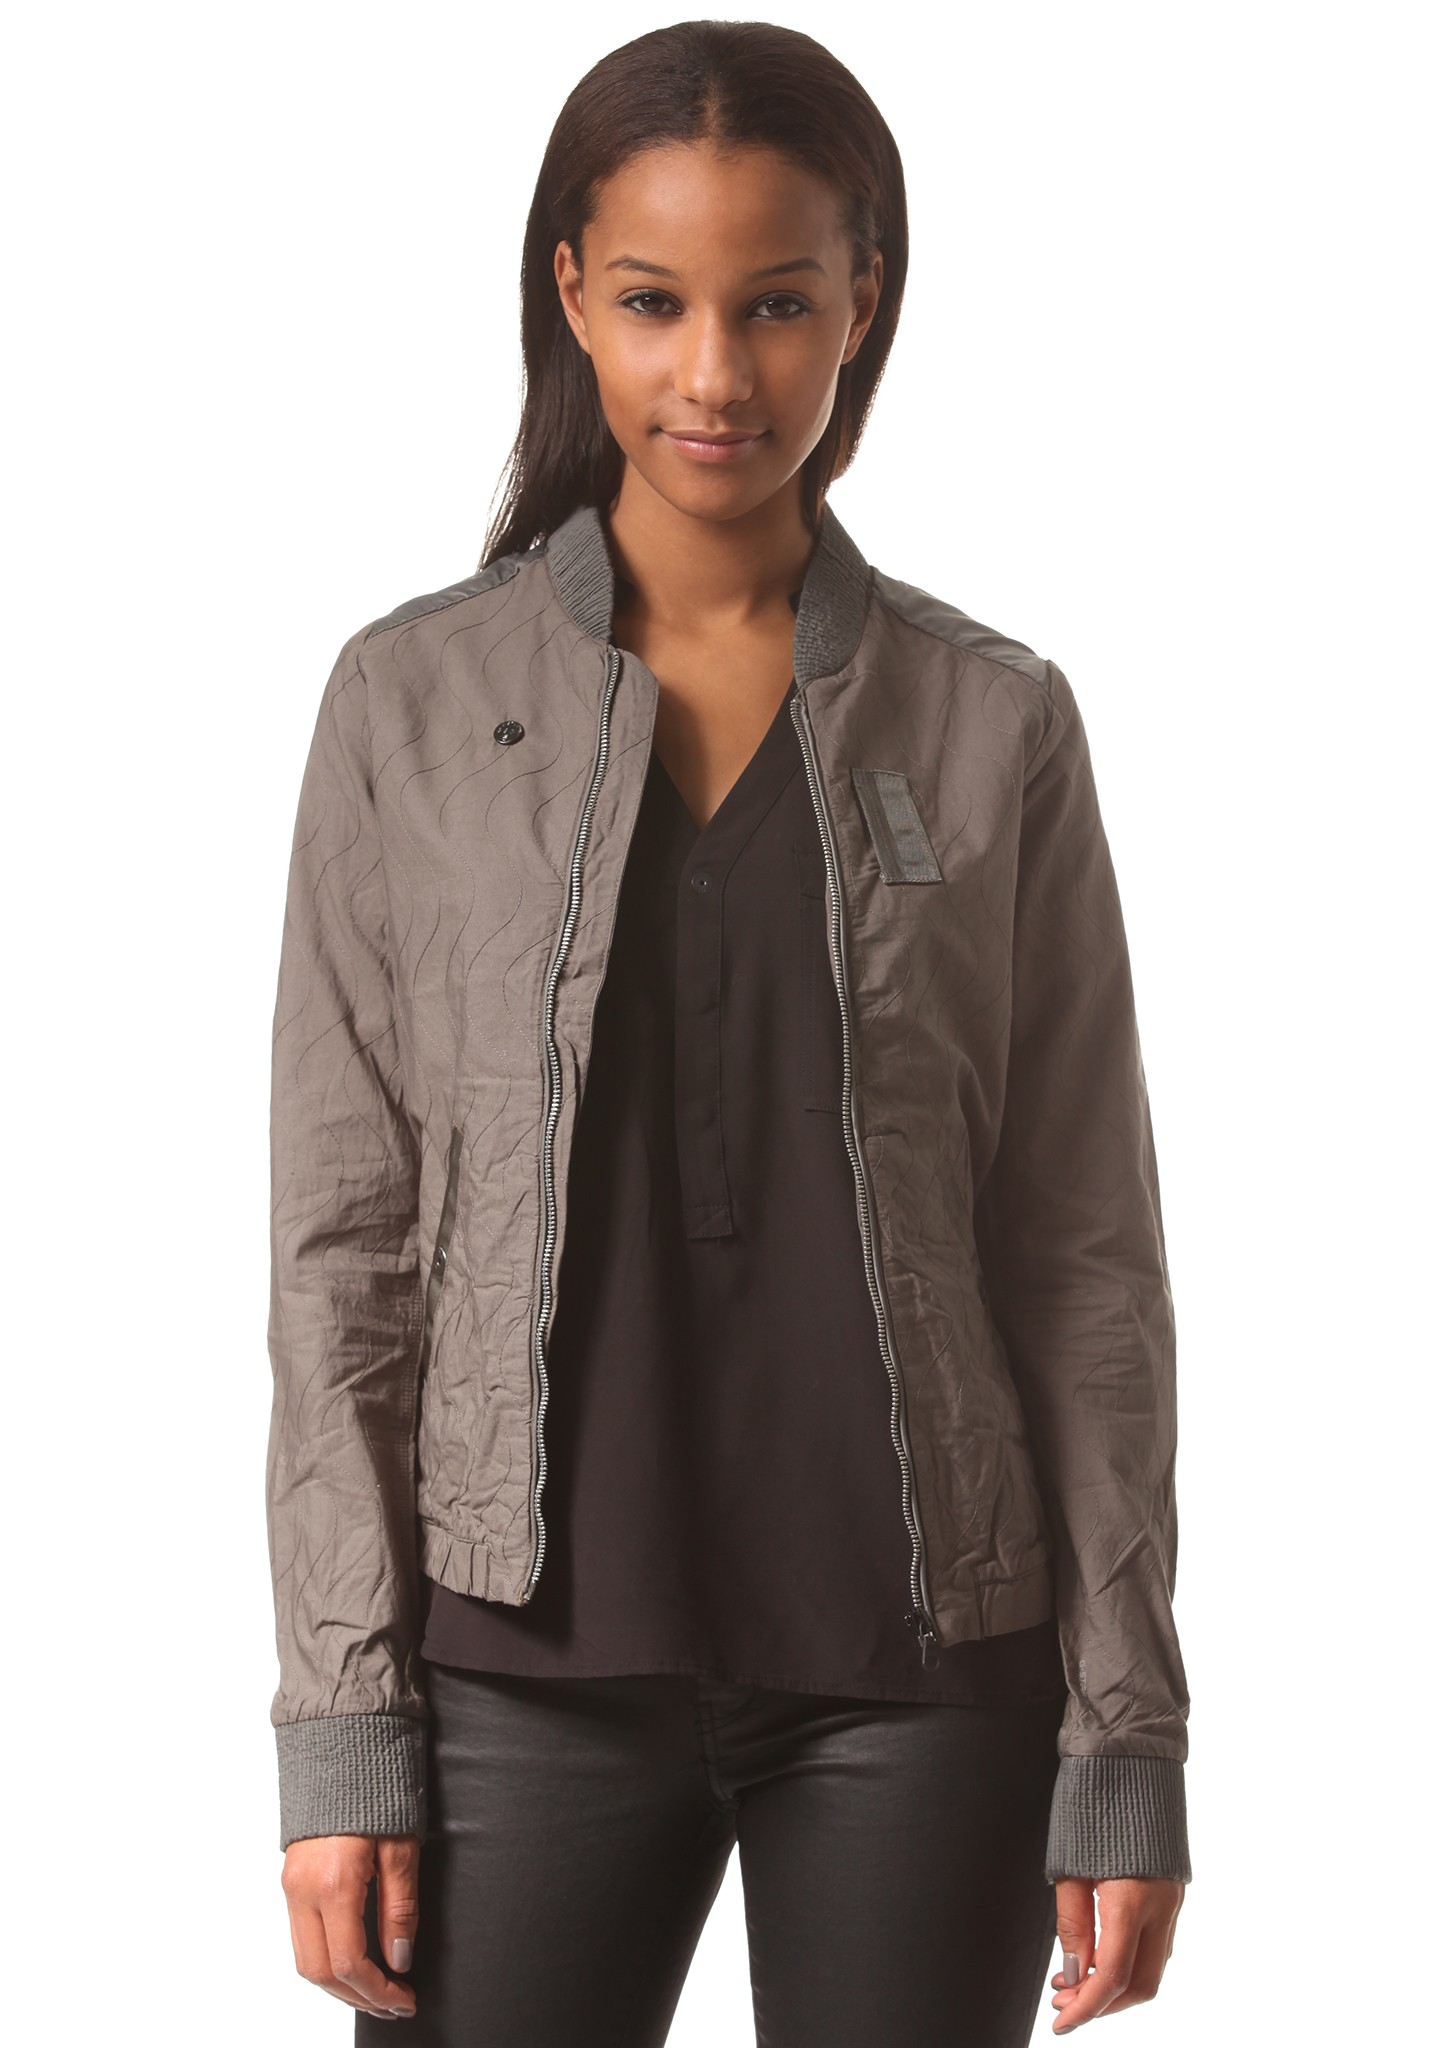 neu g star bomber stitch overshirt damen jacke ebay. Black Bedroom Furniture Sets. Home Design Ideas